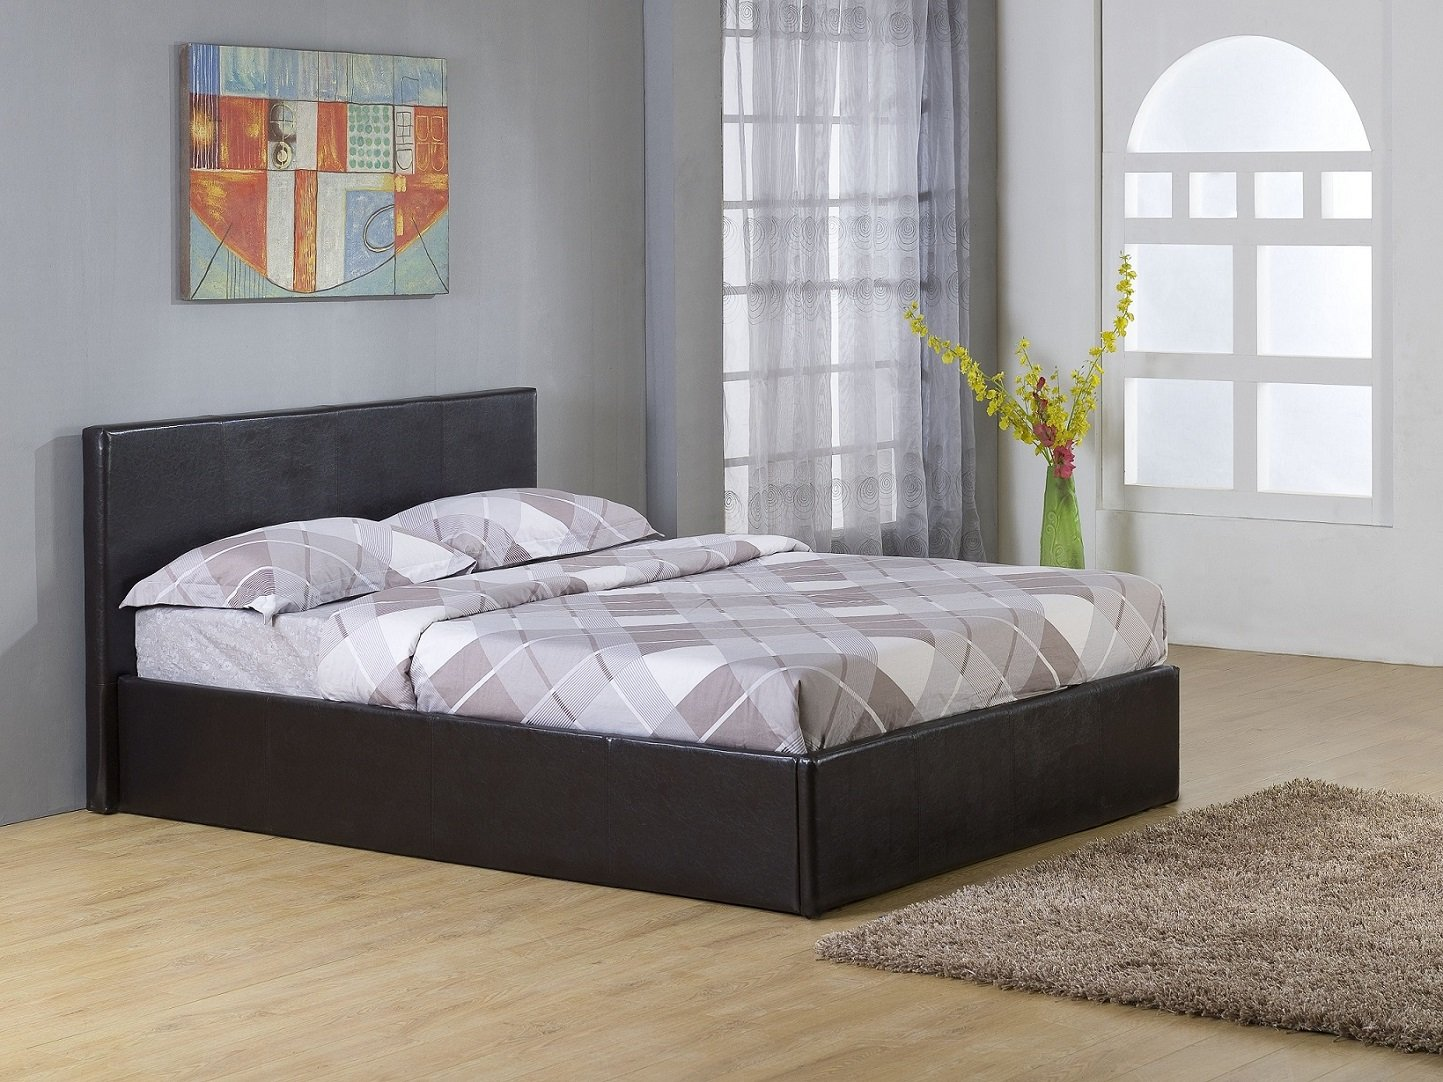 Superior Dark Brown 4ft Small Double Storage Ottoman Gas Lift Up Bed Frame TIGERBEDS  BRANDED PRODUCT: Amazon.co.uk: Kitchen U0026 Home